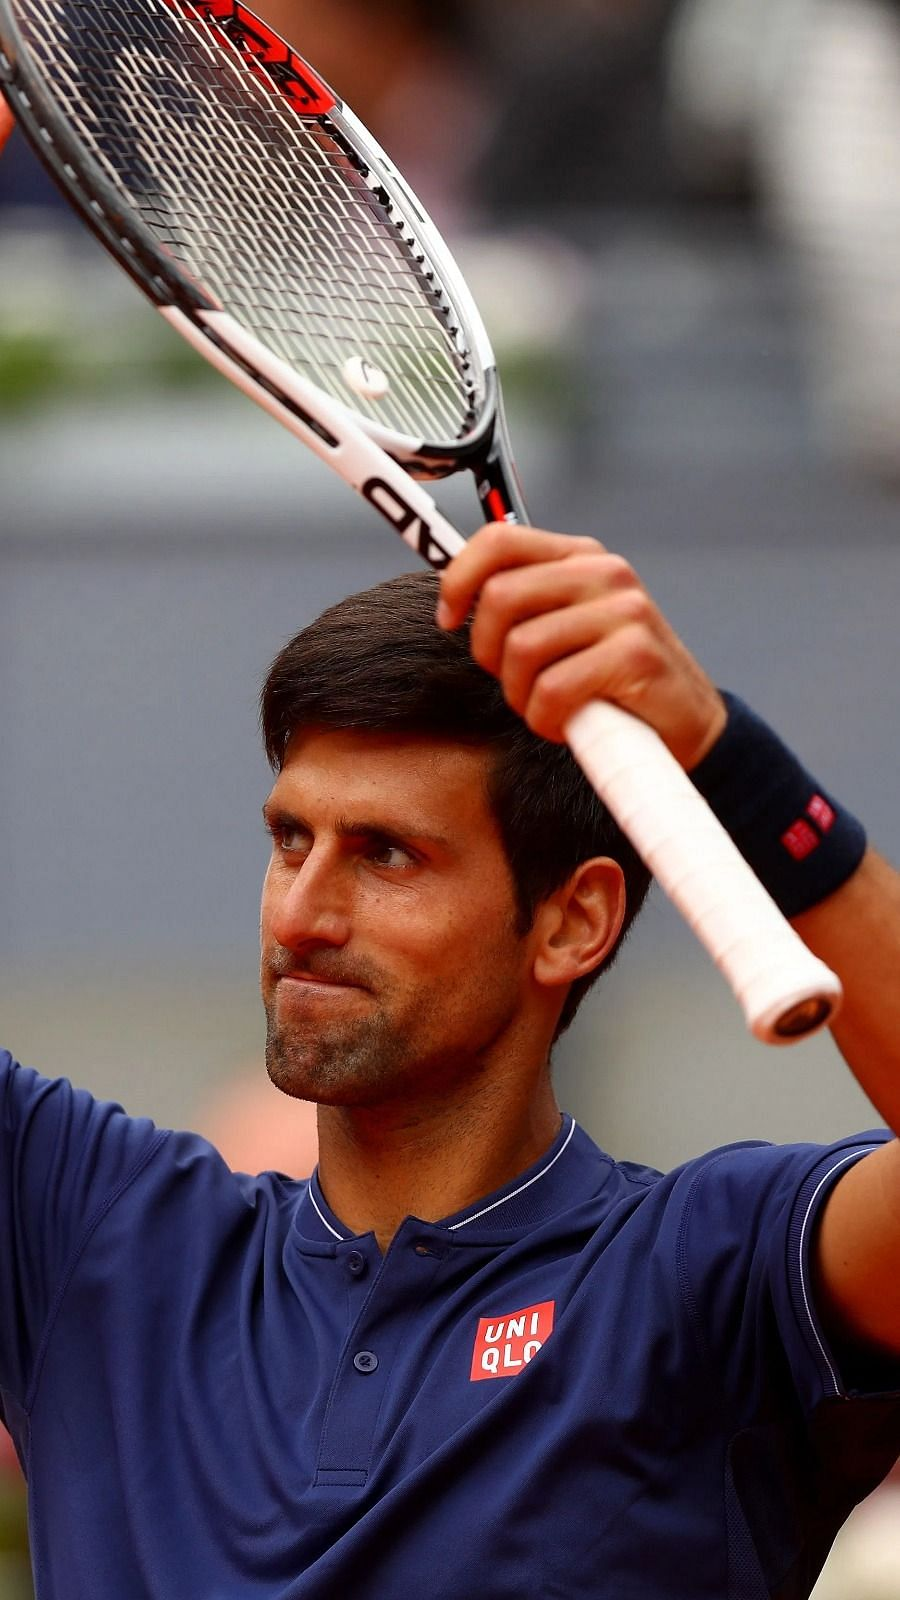 Novak Djokovic Is The Only Top Player To Make Covid 19 Donations In 3 Different Countries